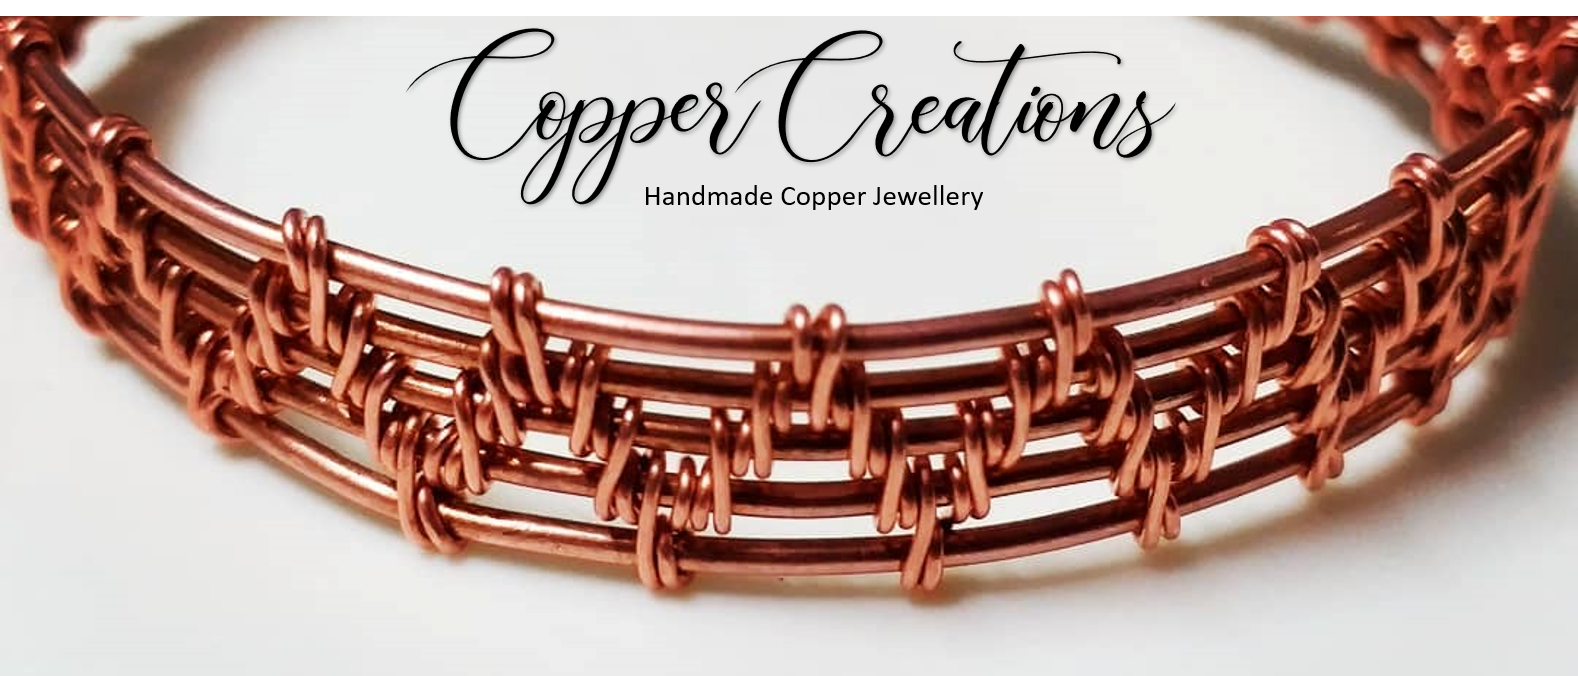 COPPER CREATIONS